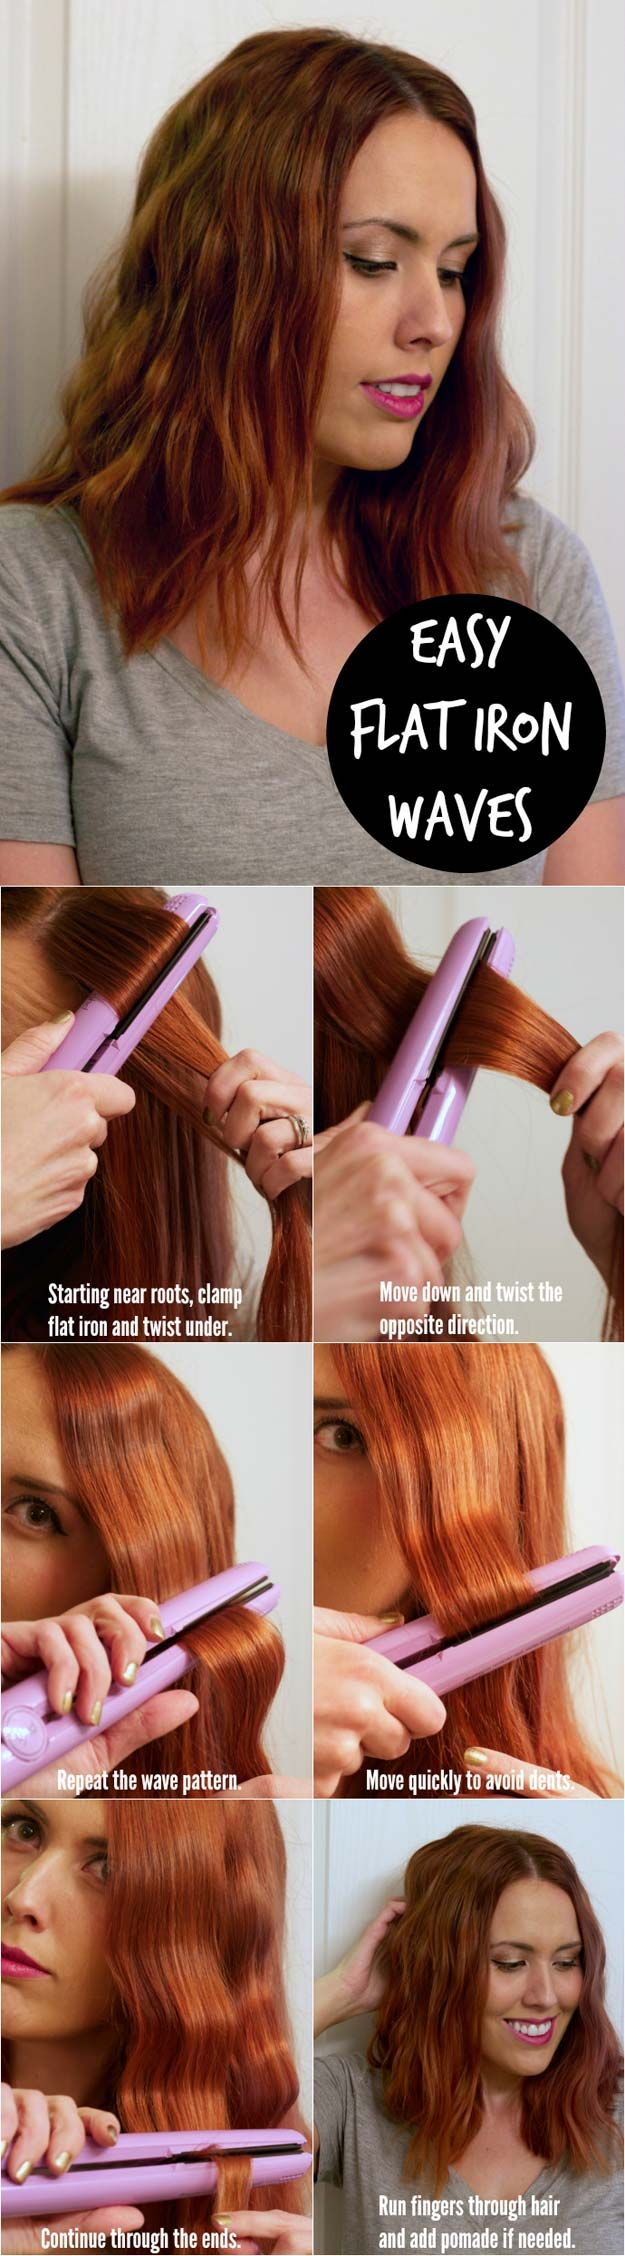 Hair Straightening Tutorials - Easy Flat Iron Waves Tutorial -Looking For The Be...